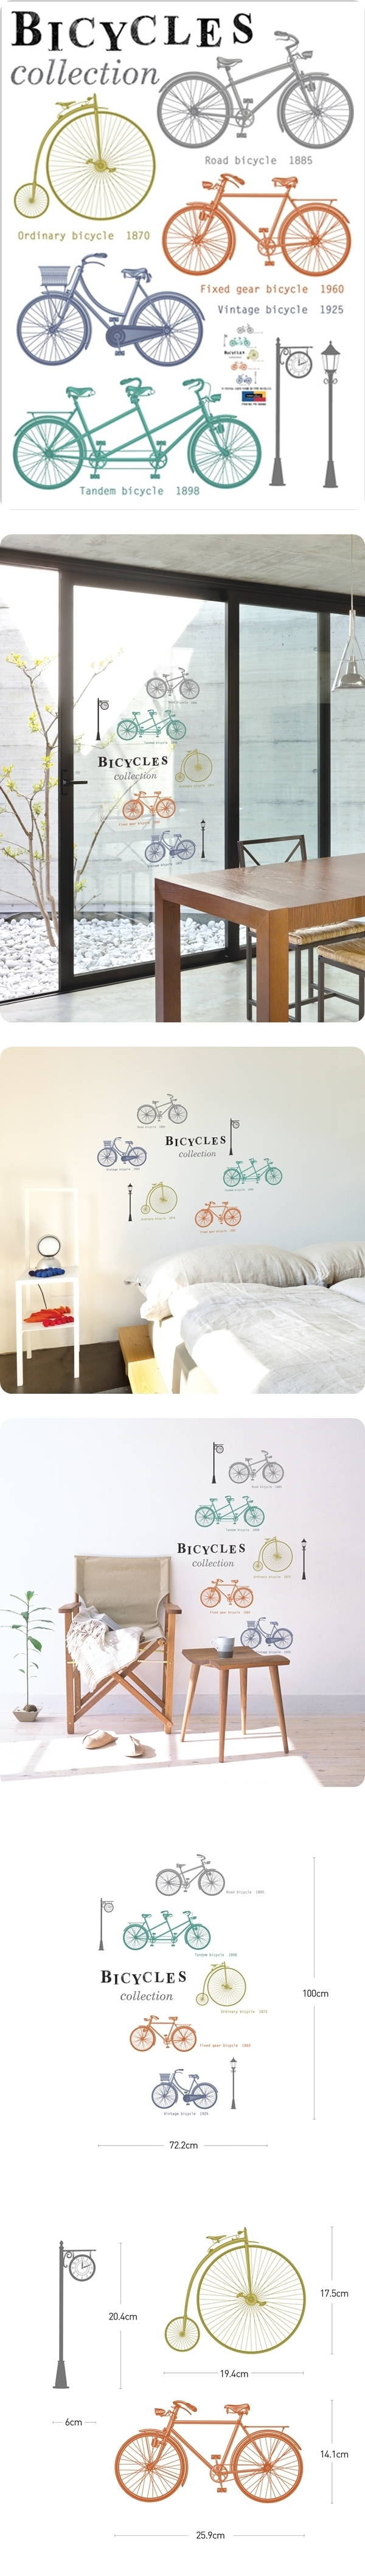 Wall Sticker, Bicycles correction, Home decoration